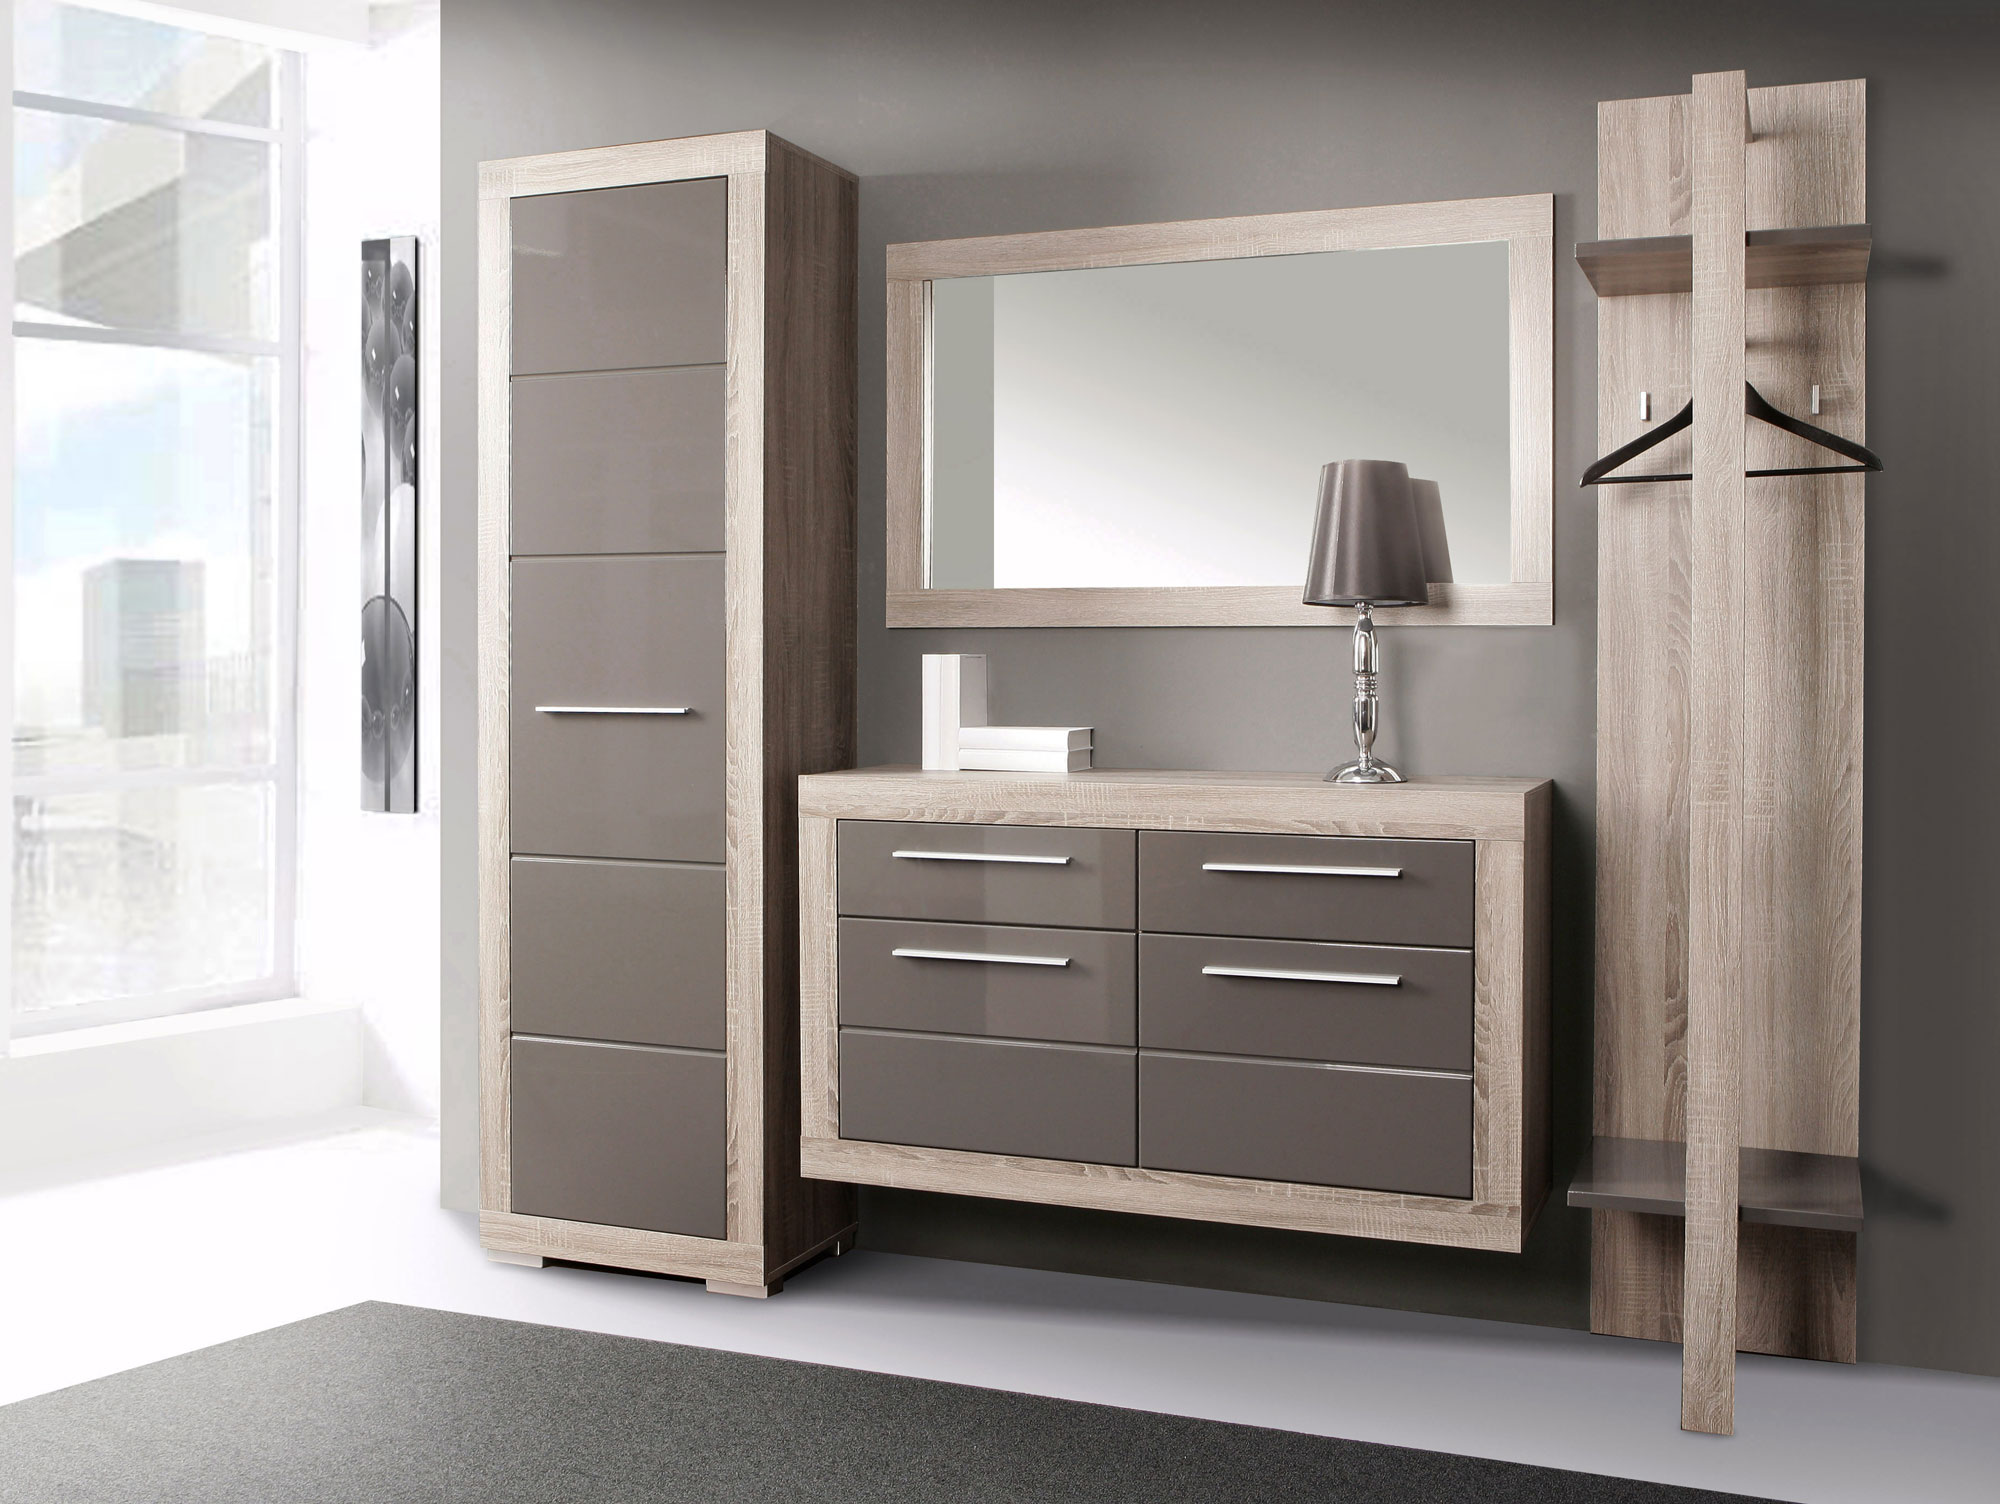 amberg garderobenset eiche sonoma grau grau hochglanz. Black Bedroom Furniture Sets. Home Design Ideas